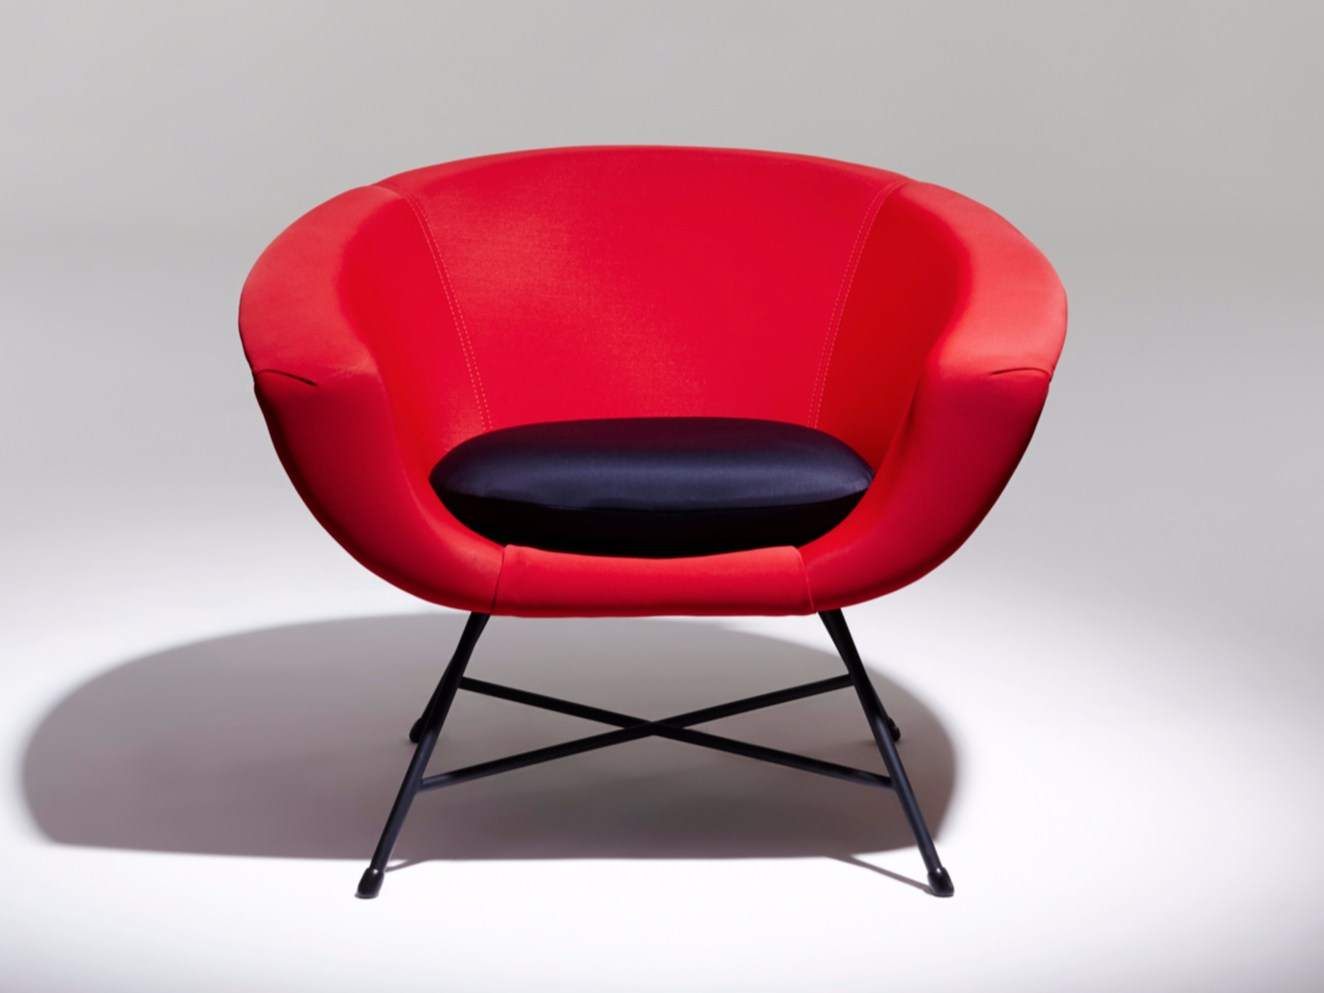 Burov Fauteuils 58 Fauteuil By Burov Design Dangles And Defrance